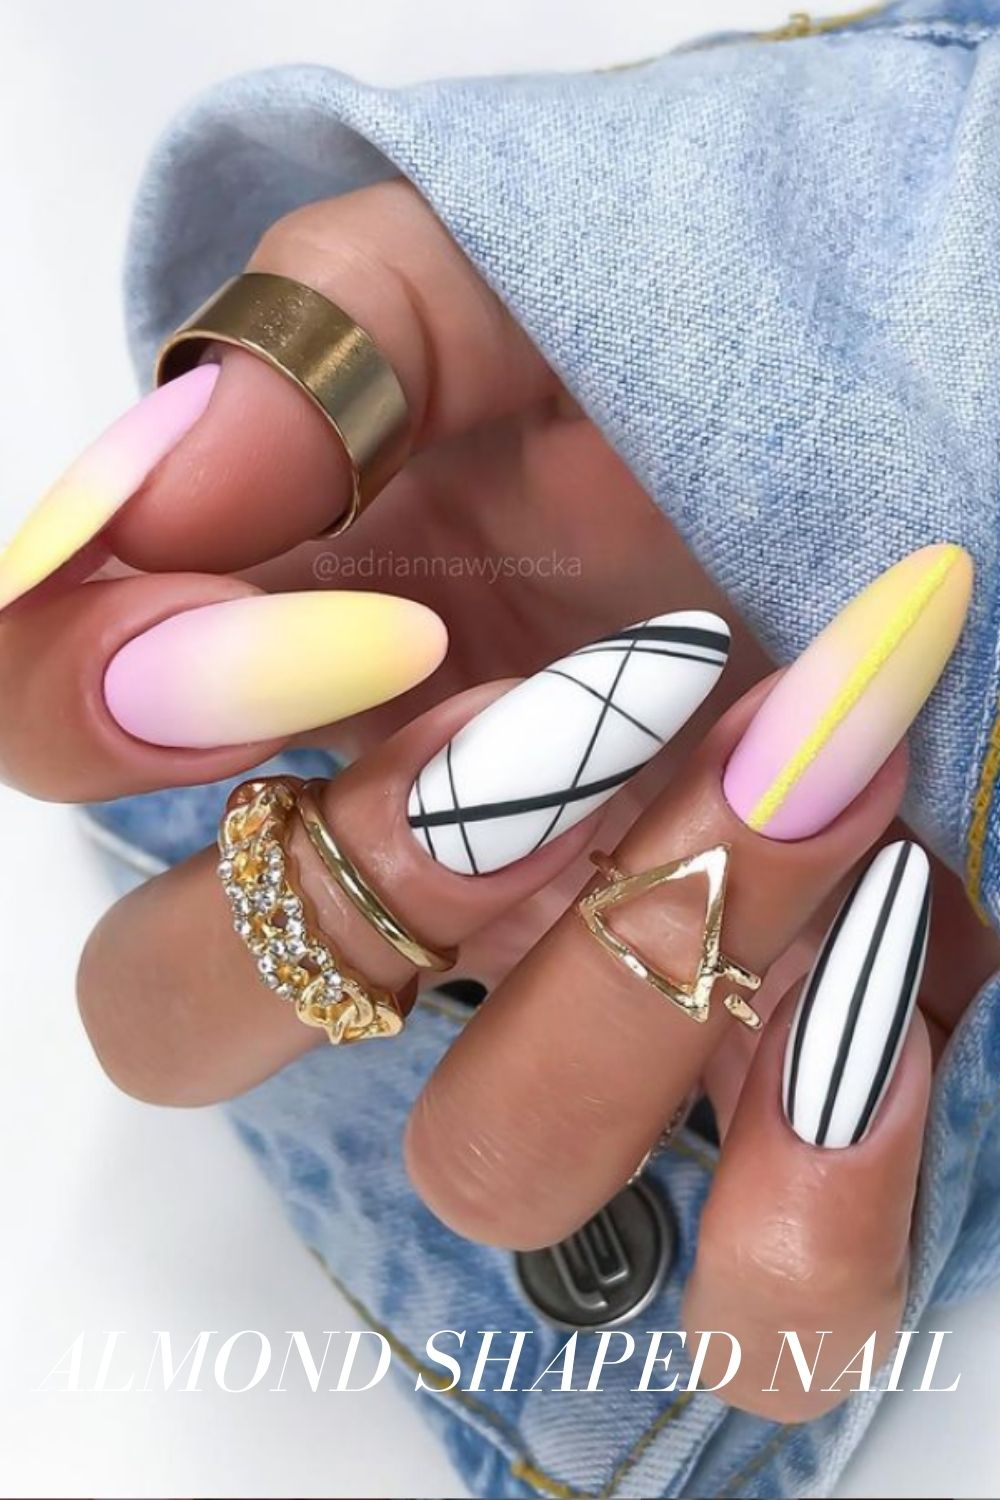 Marble has been one of the major nail trends for apparent reasons. It makes your fingers look stylish, understated, and artsy -- and popular in photos, too. You can try a marble pattern on one or two fingers, as the design will go well with many different colors. Get a marble manicure if you have the guts!